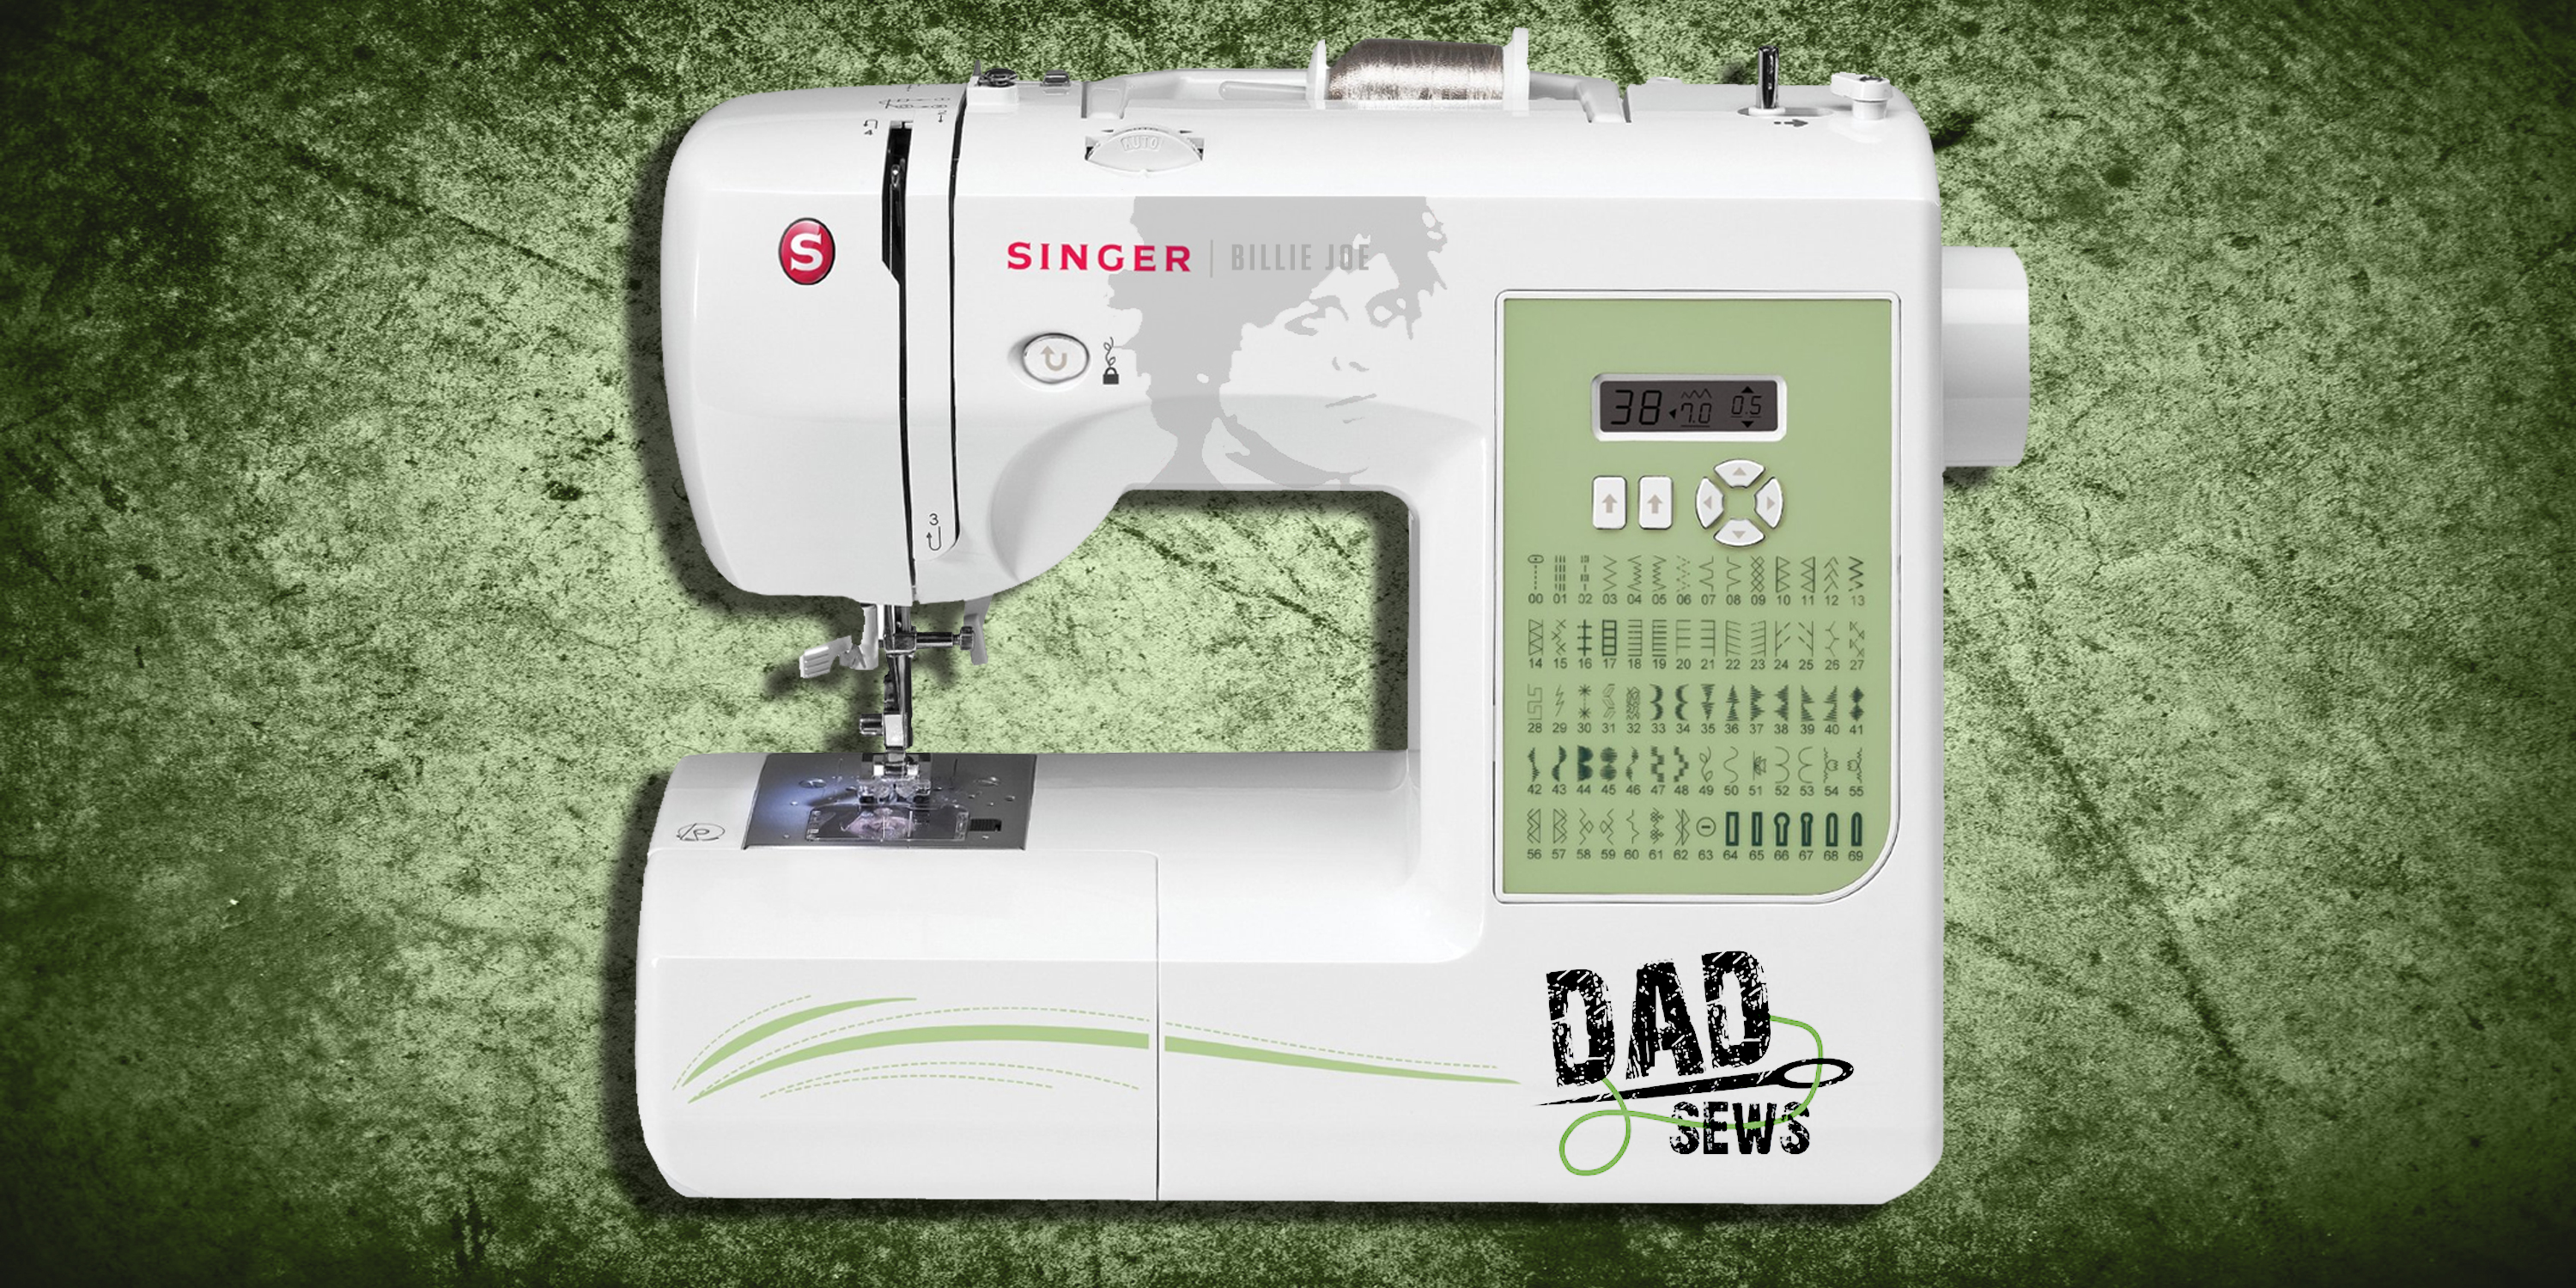 DadSews.com Our Singer Sewing Machine Billie Joe